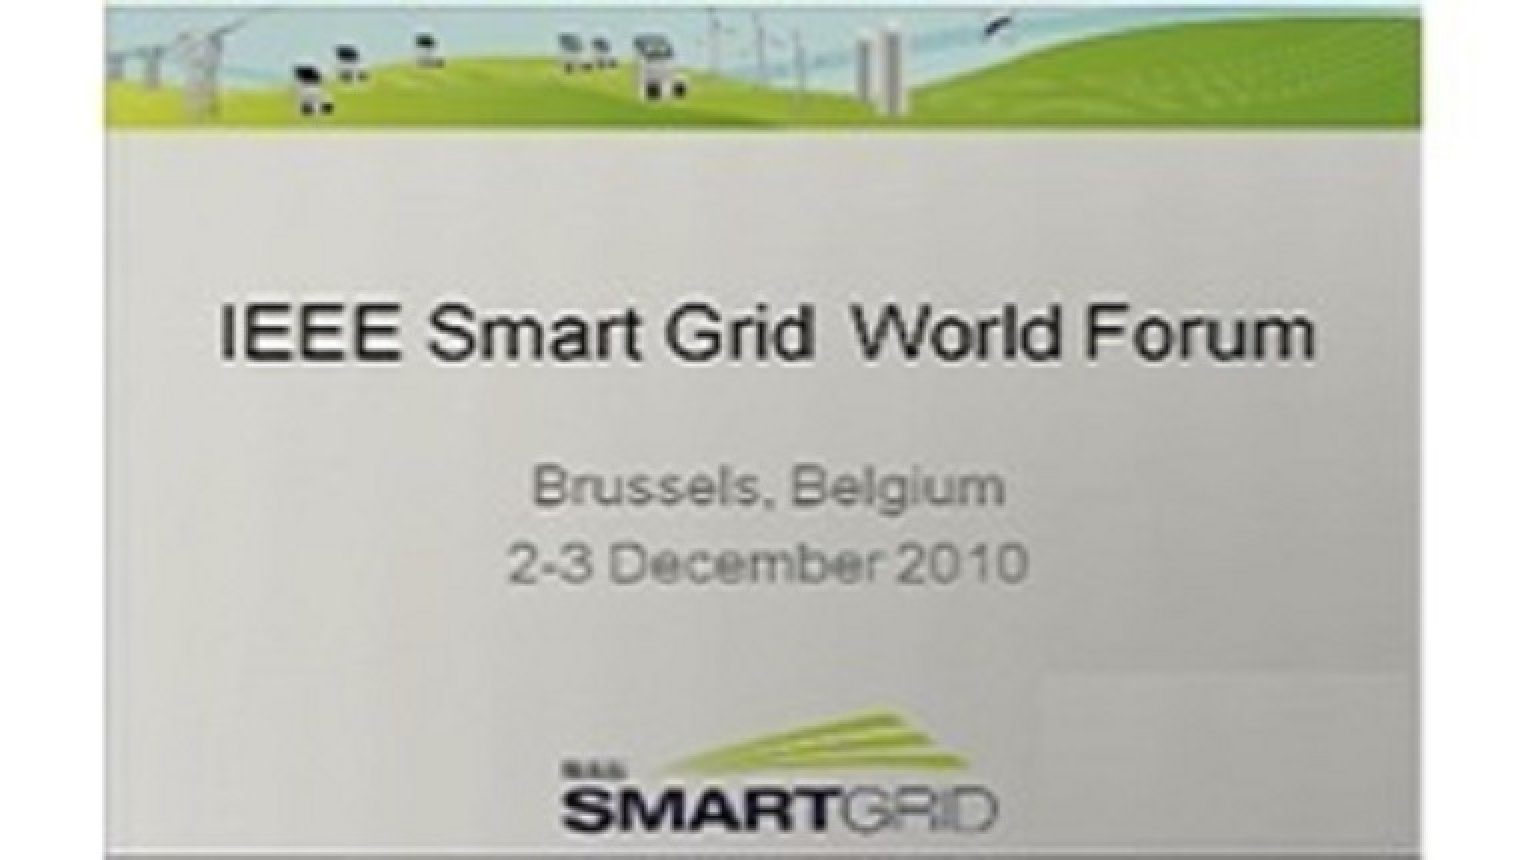 IEEE Smart Grid World Forum - Session 4 Panel Discussion